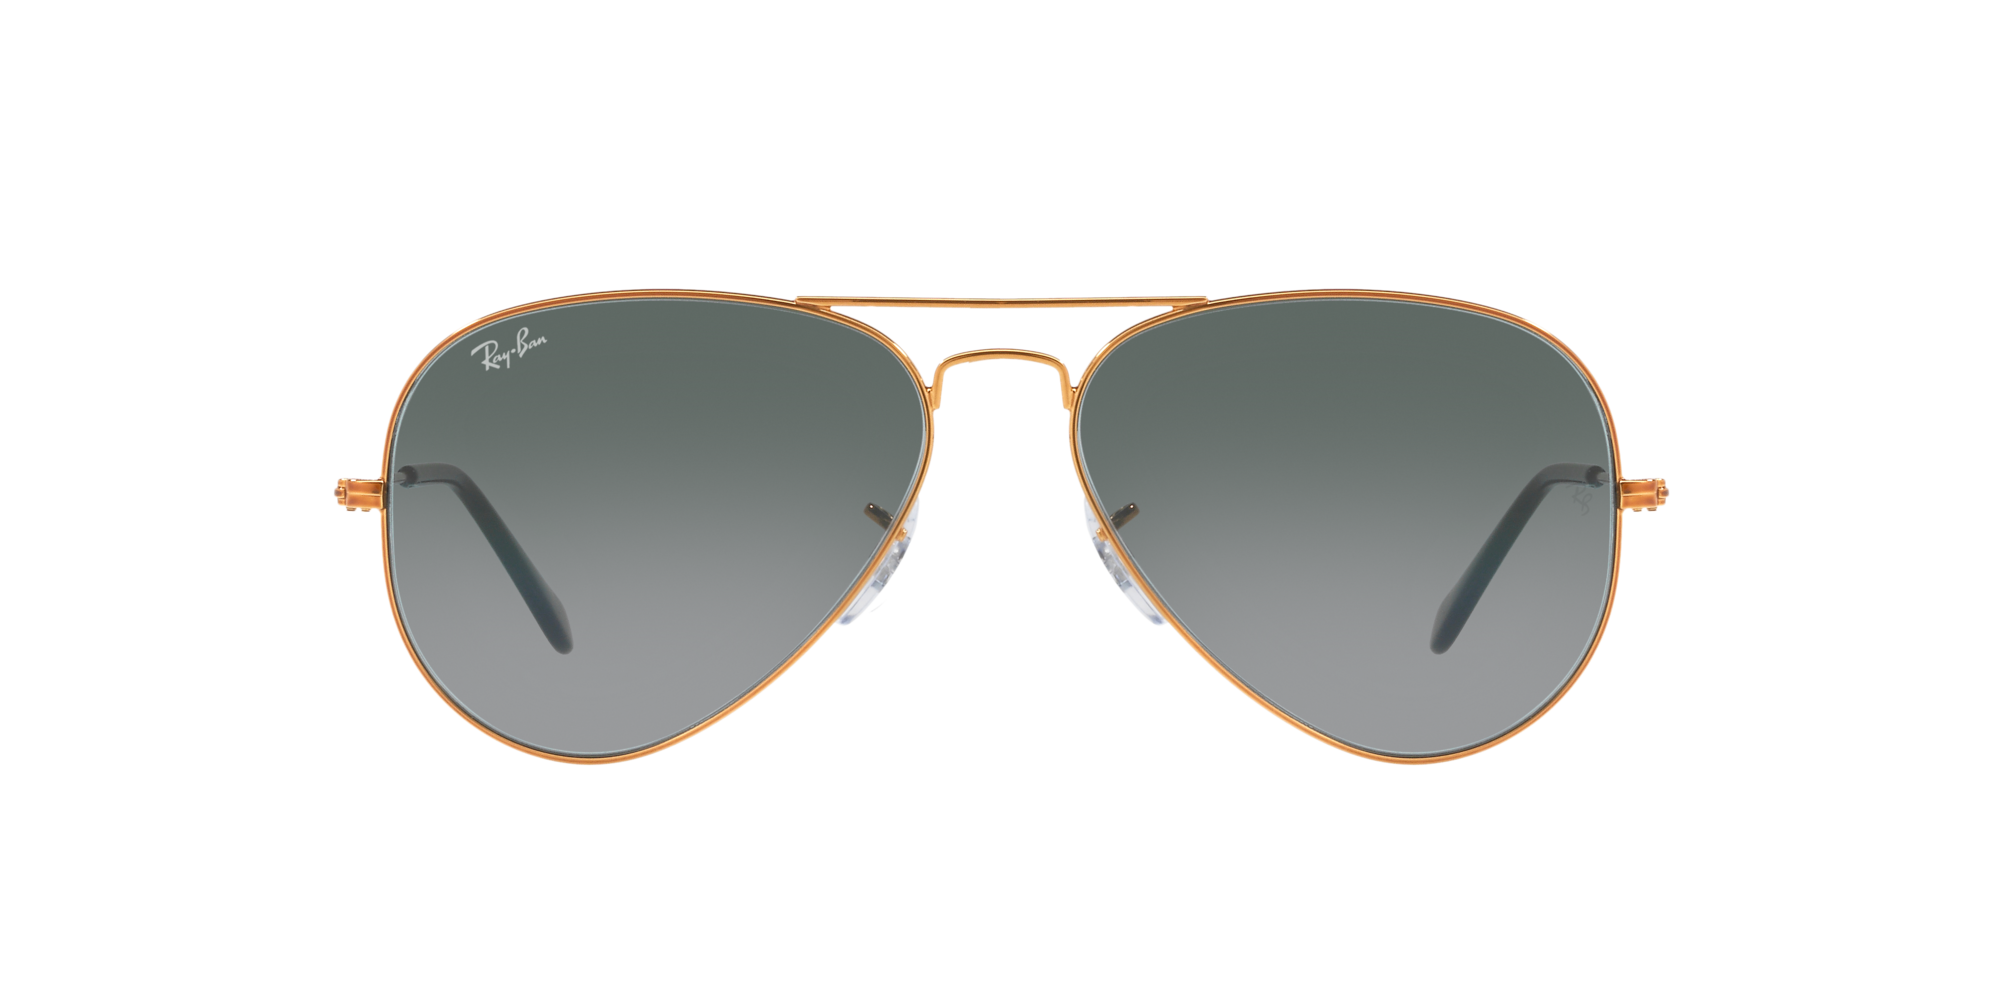 RAY-BAN AVIATOR CLASSIC RB 3025 197/71 58mm.-360